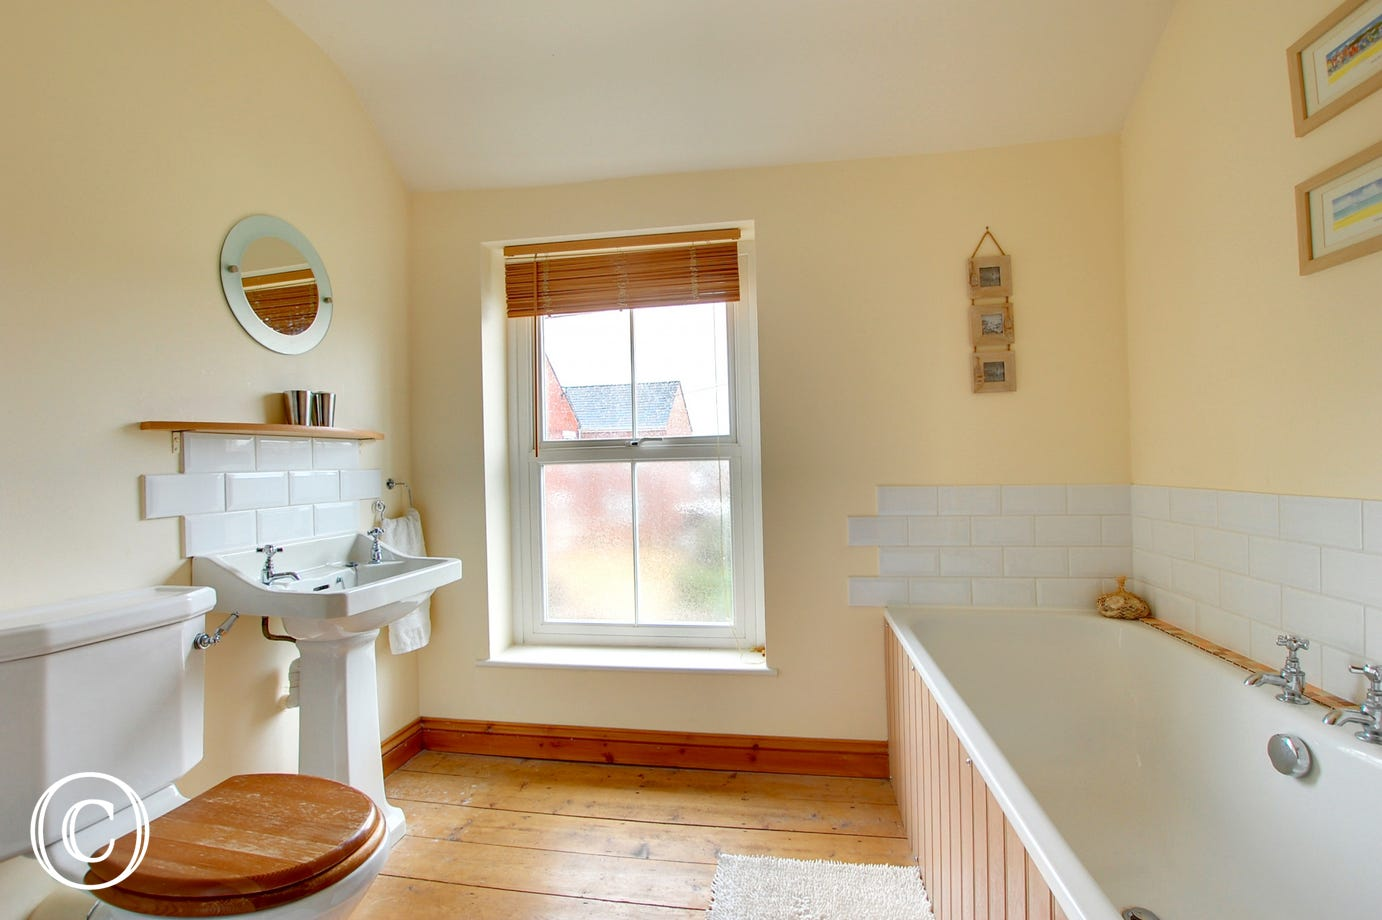 The bathroom is large and traditional with a window looking to the front of the property and wooden floor